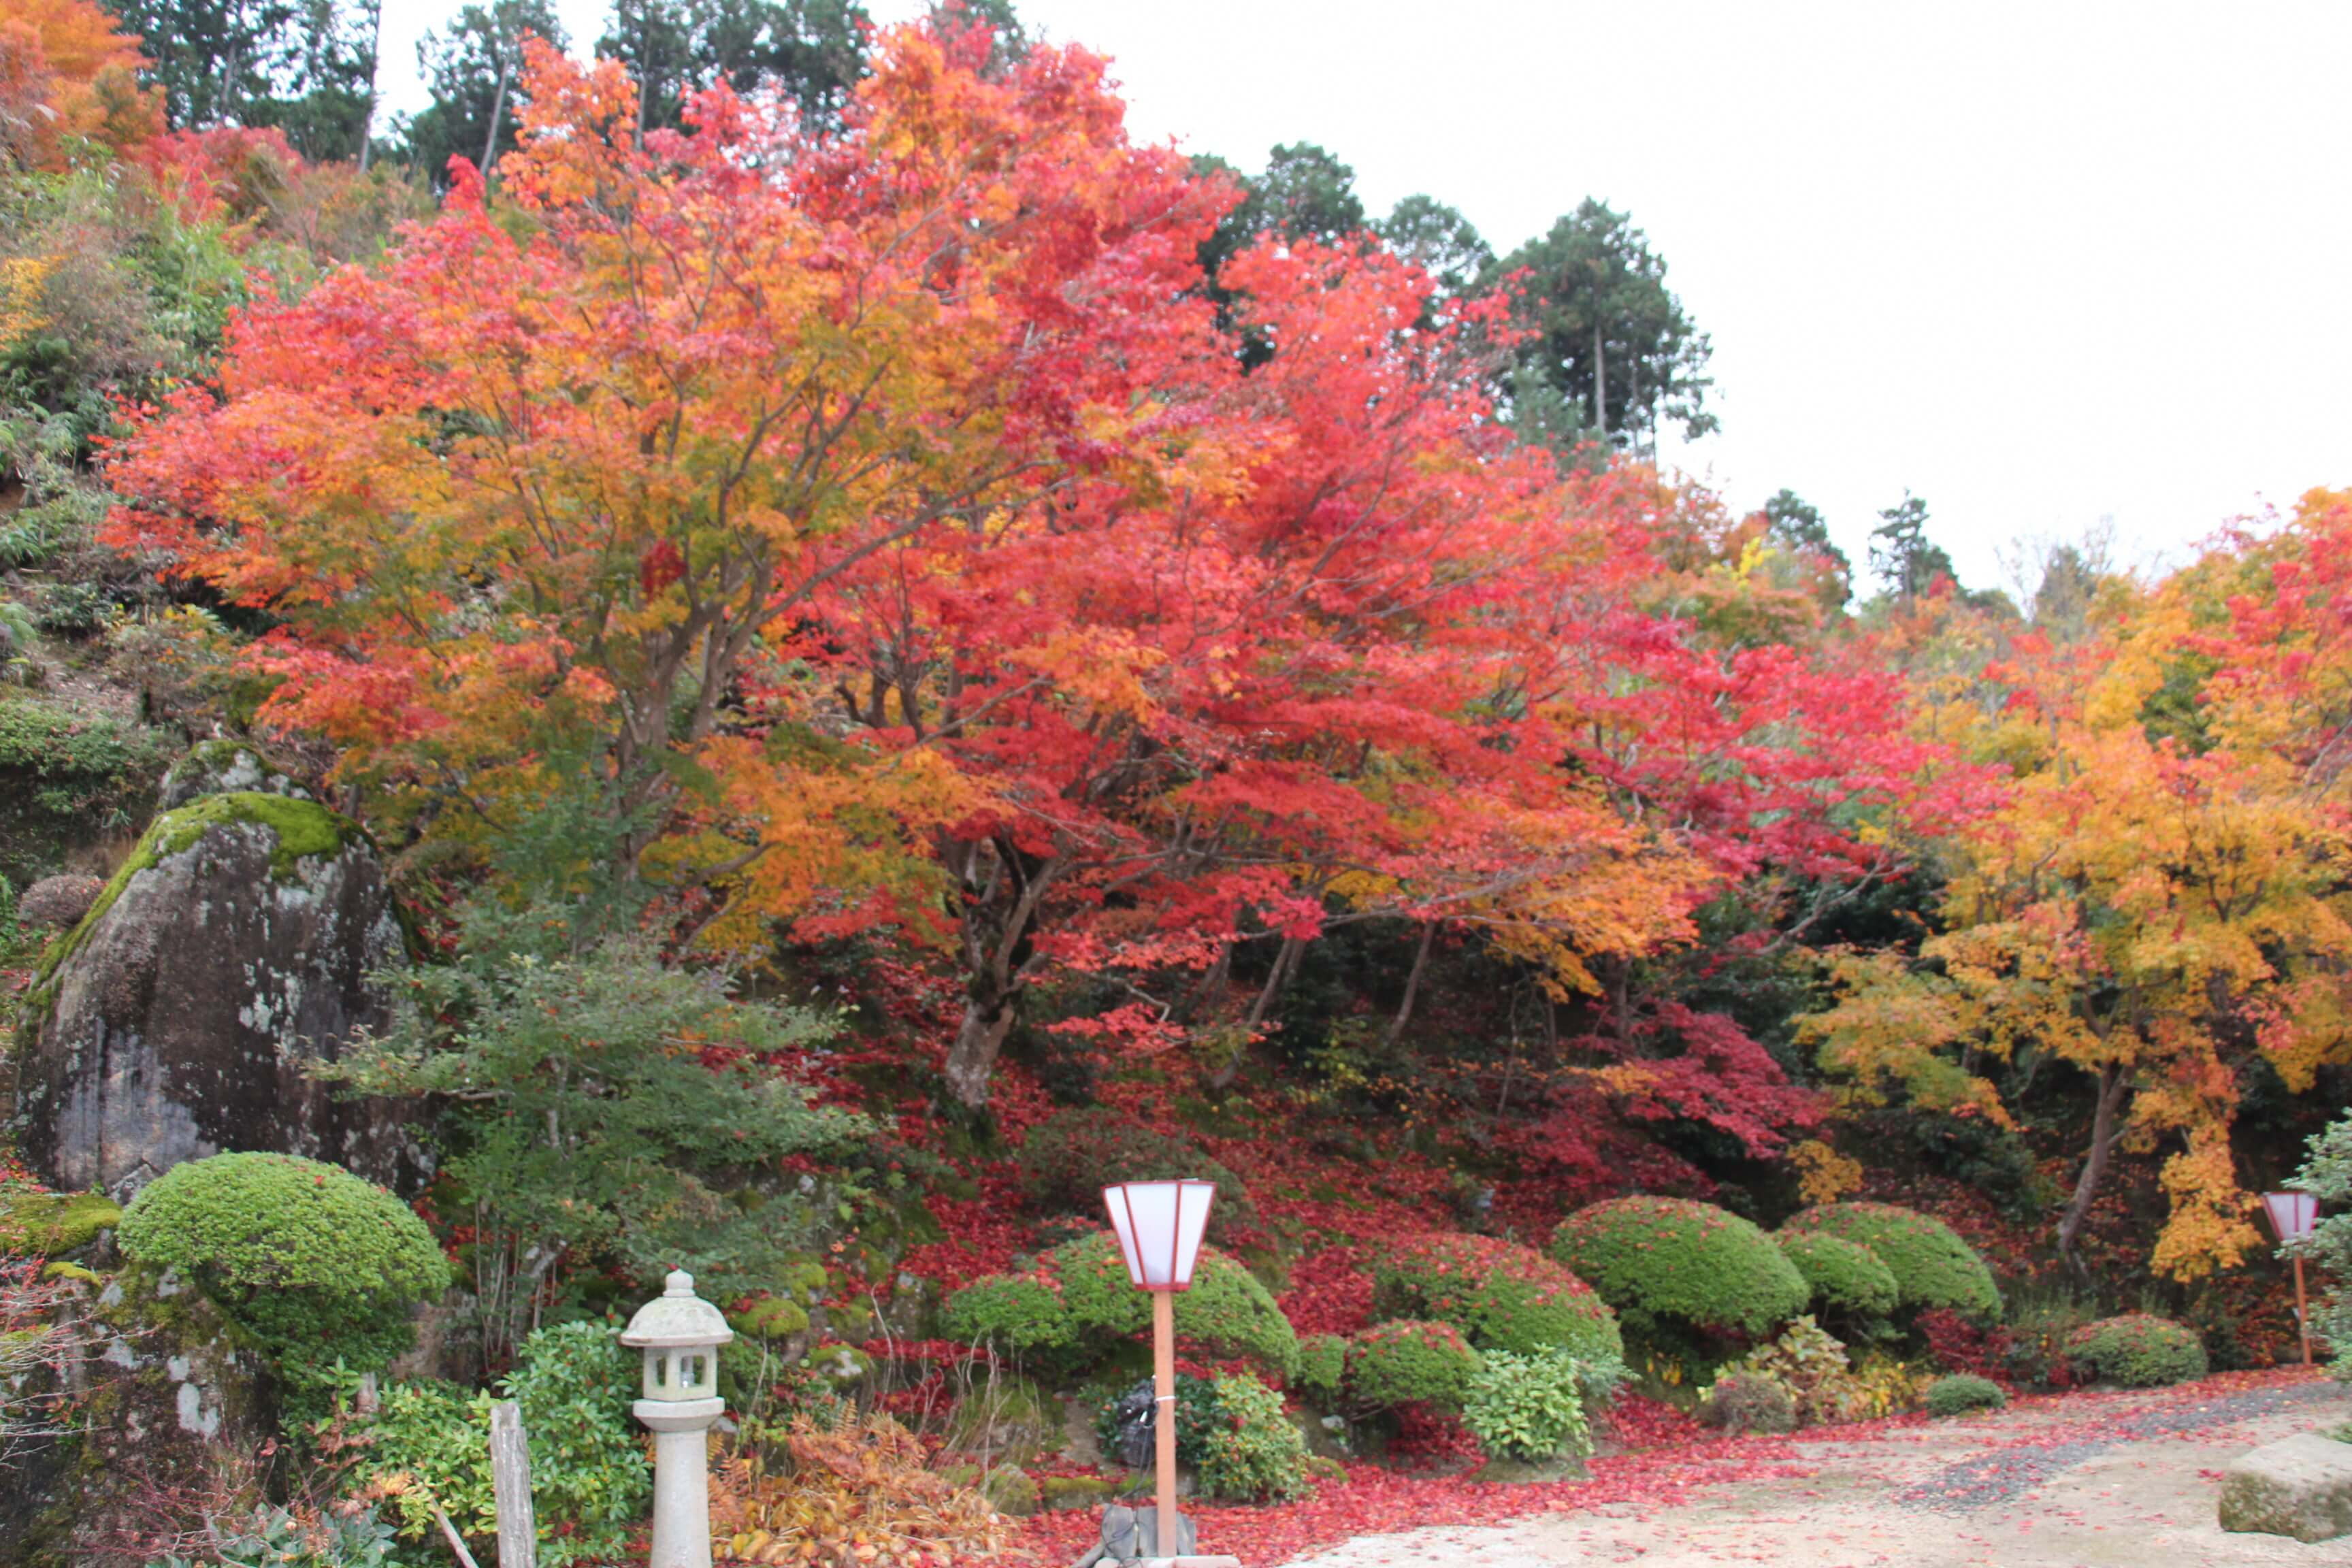 %e4%ba%ac%e9%83%bd-%e7%b4%85%e8%91%89-kyoto-autumn-leaves-%e6%85%88%e5%be%b3%e9%99%a2-2